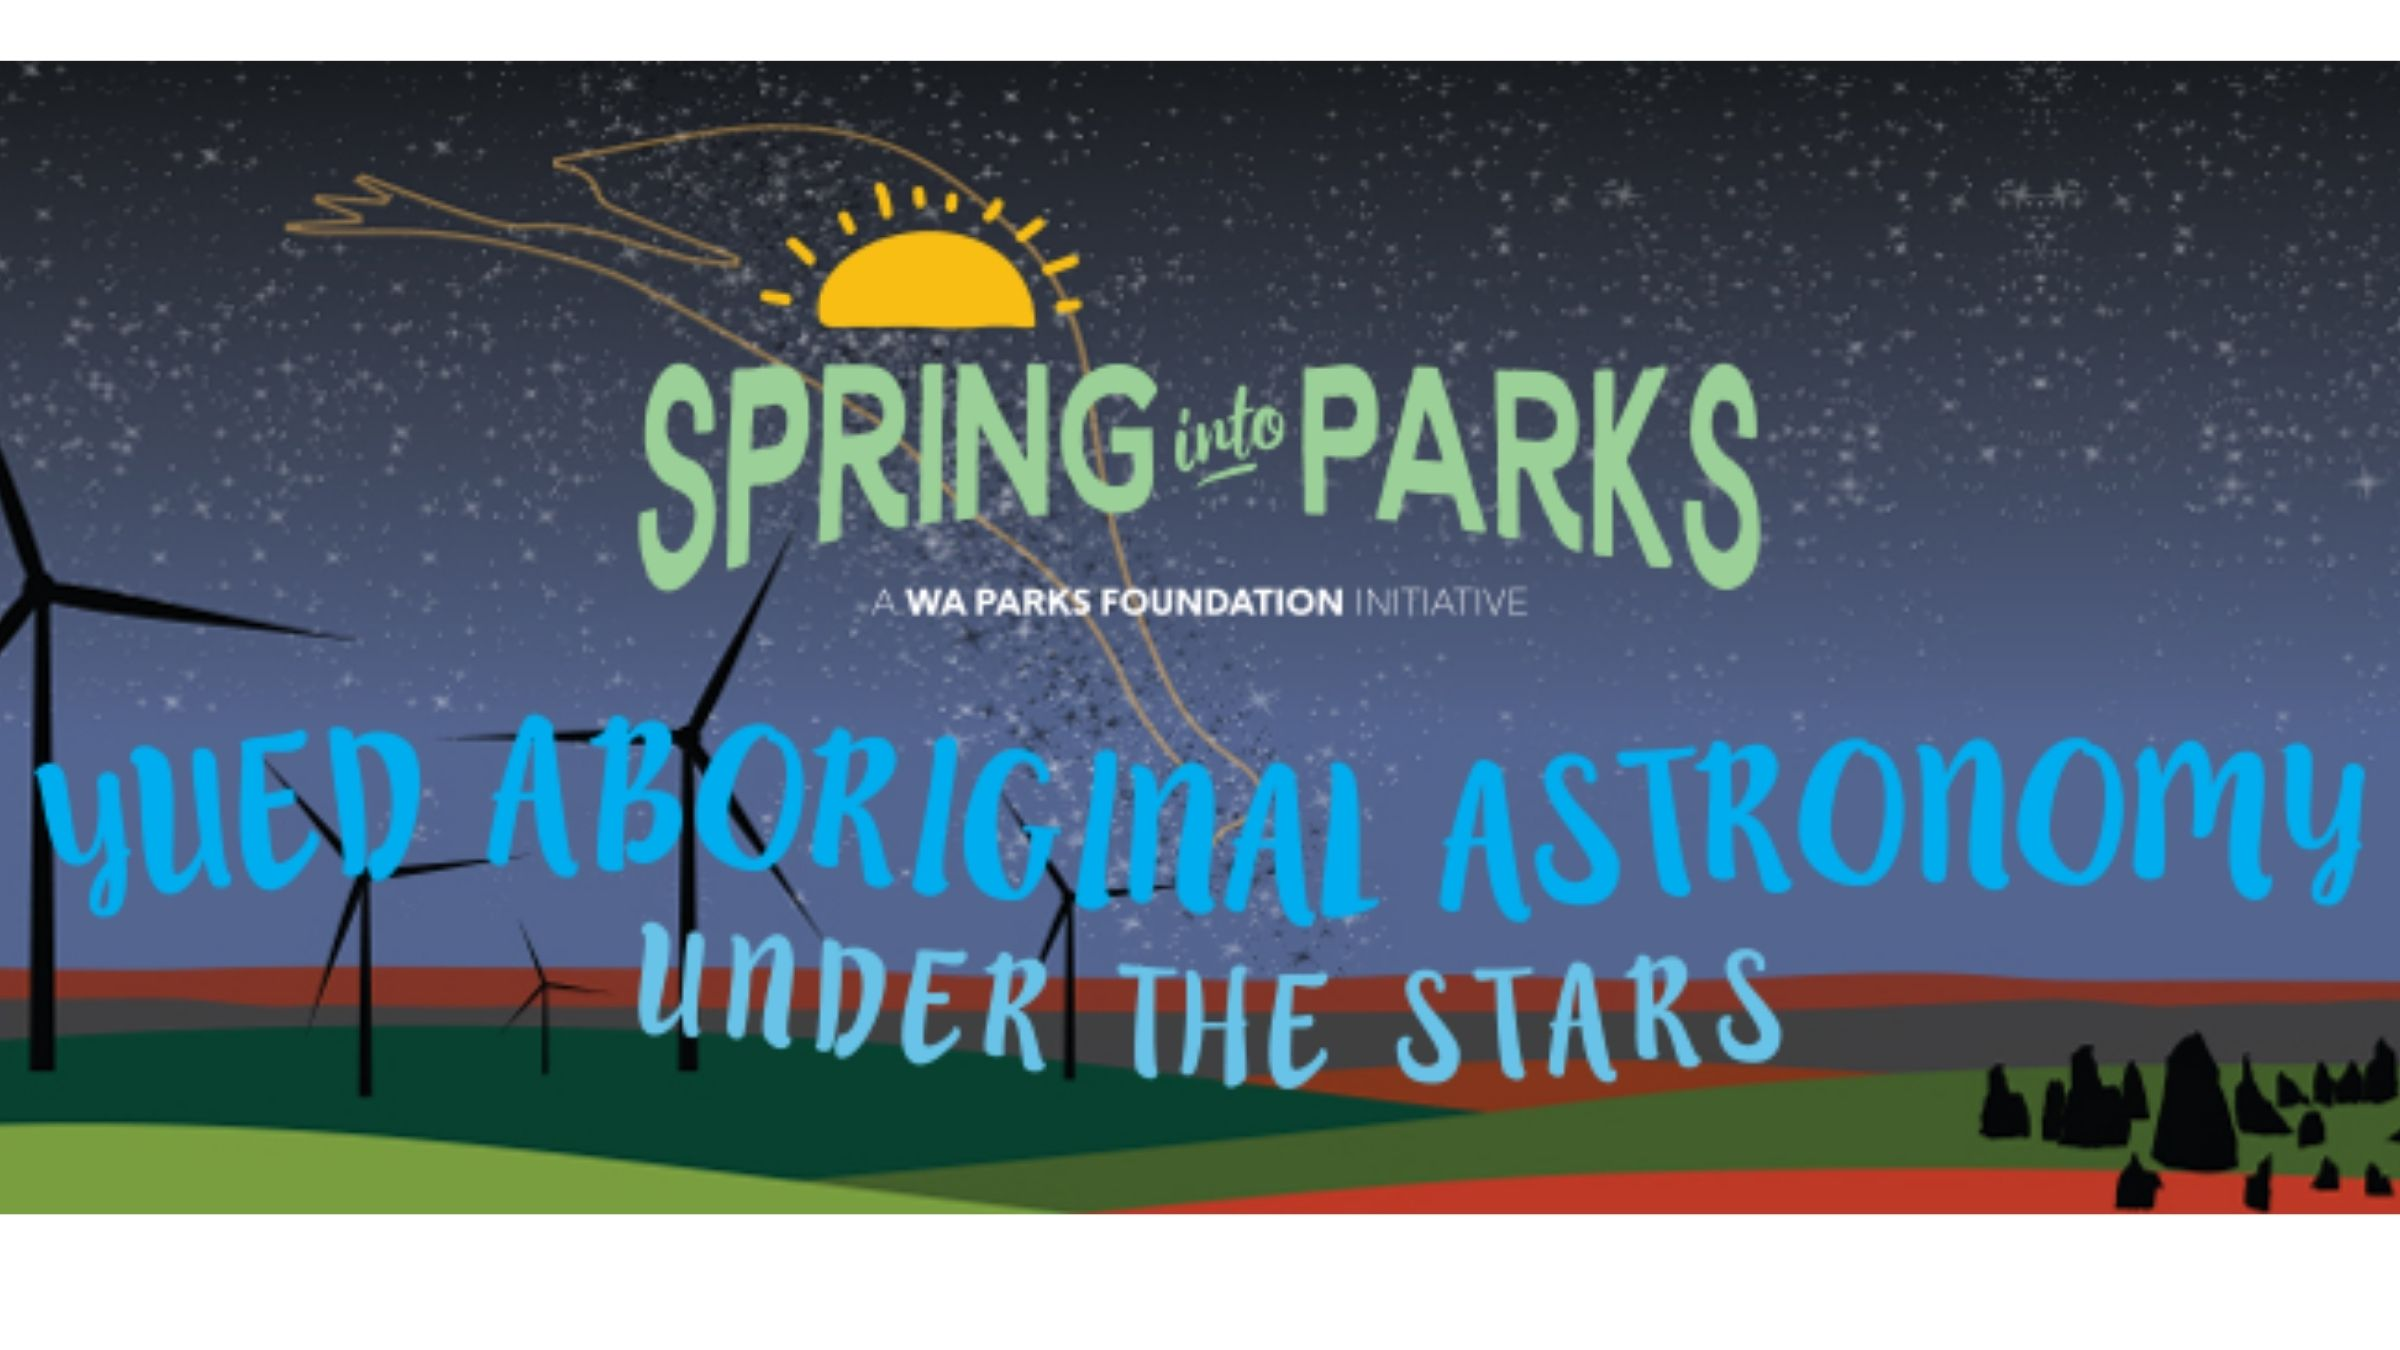 Yued Aboriginal Astronomy Under the Stars | 23rd October